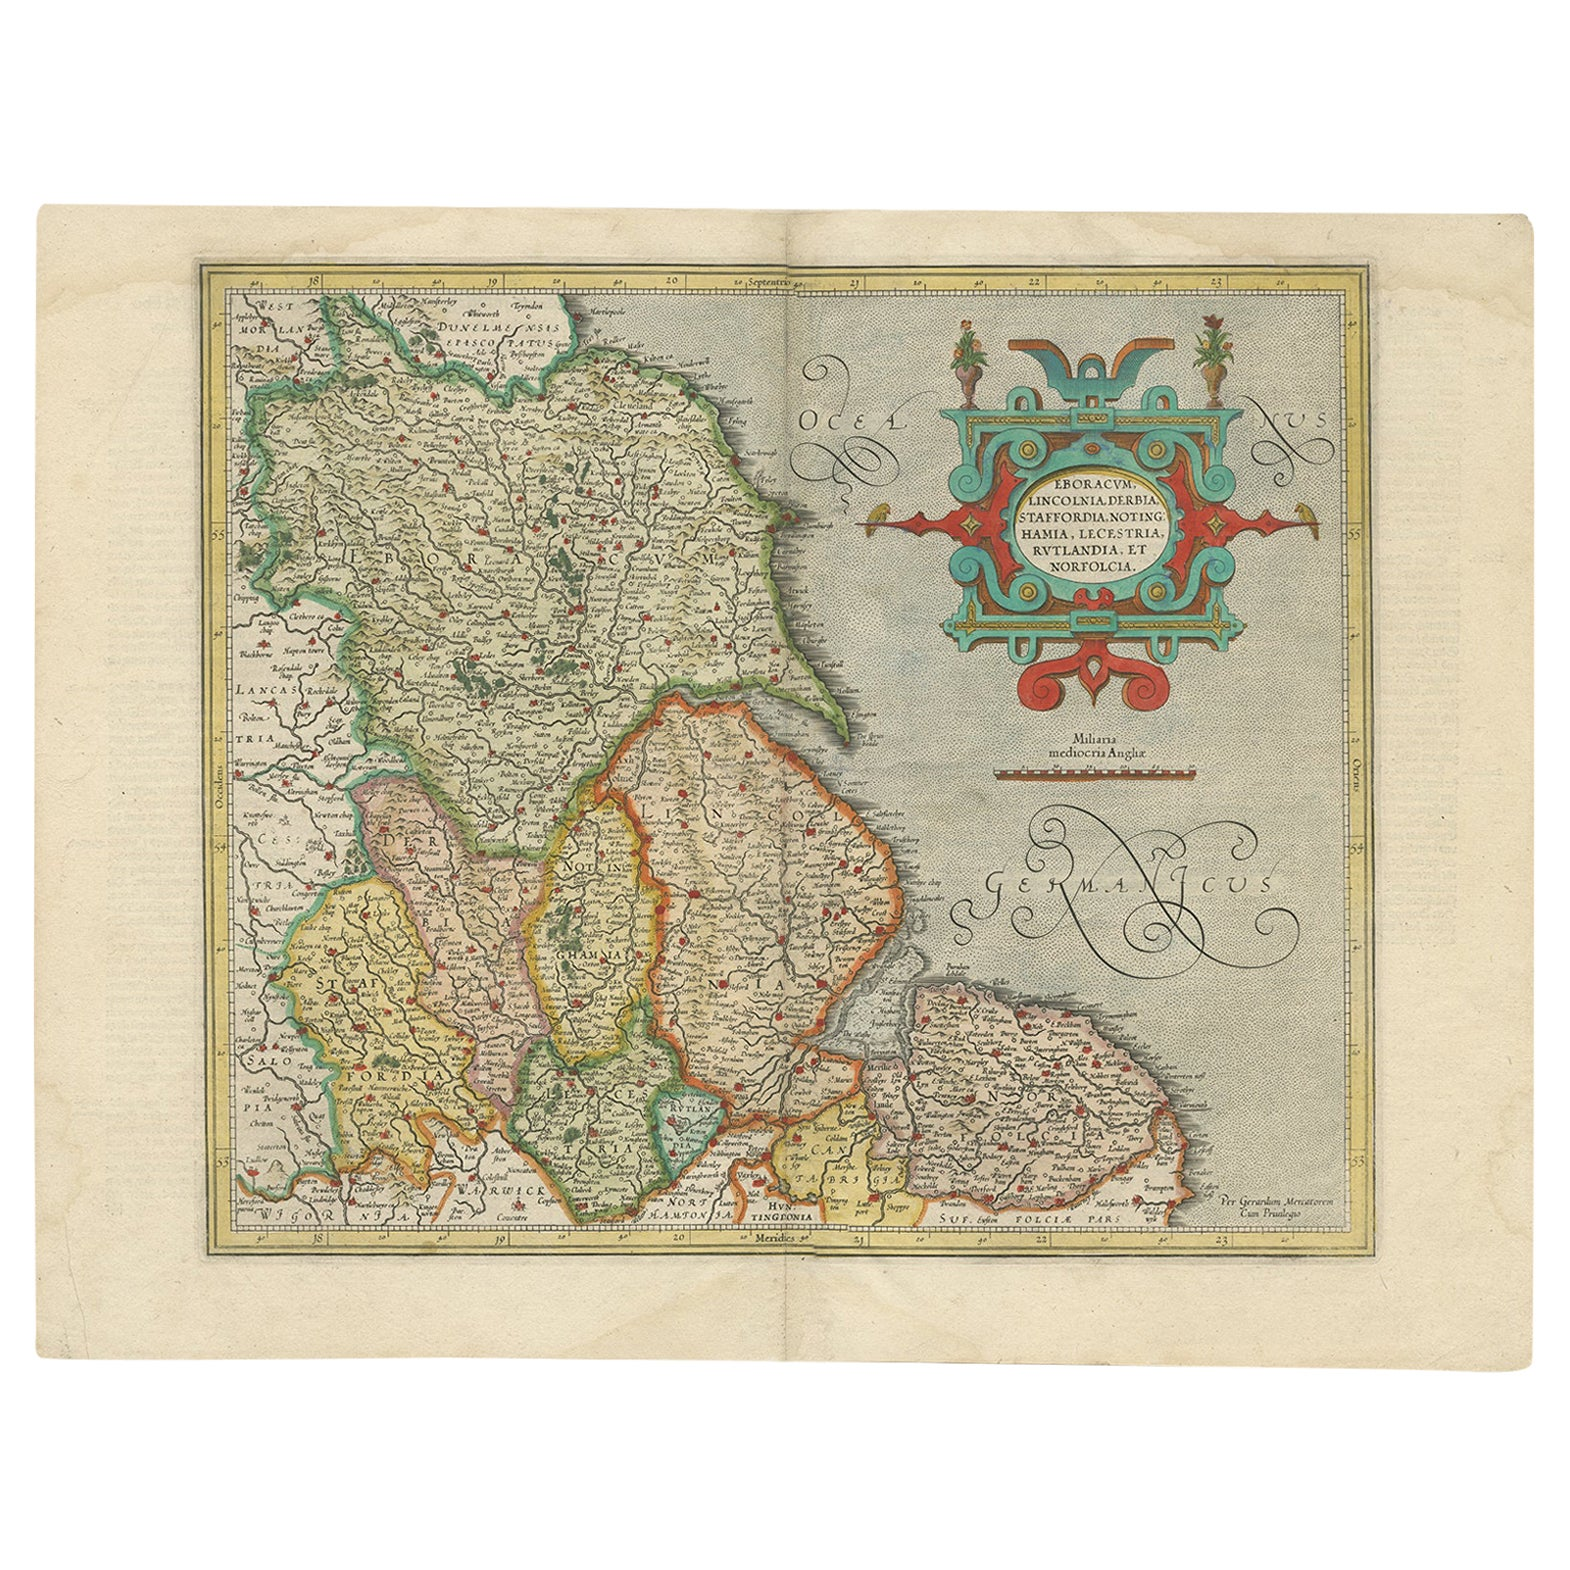 Antique Map of the Northeast of England by Mercator 'circa 1620'